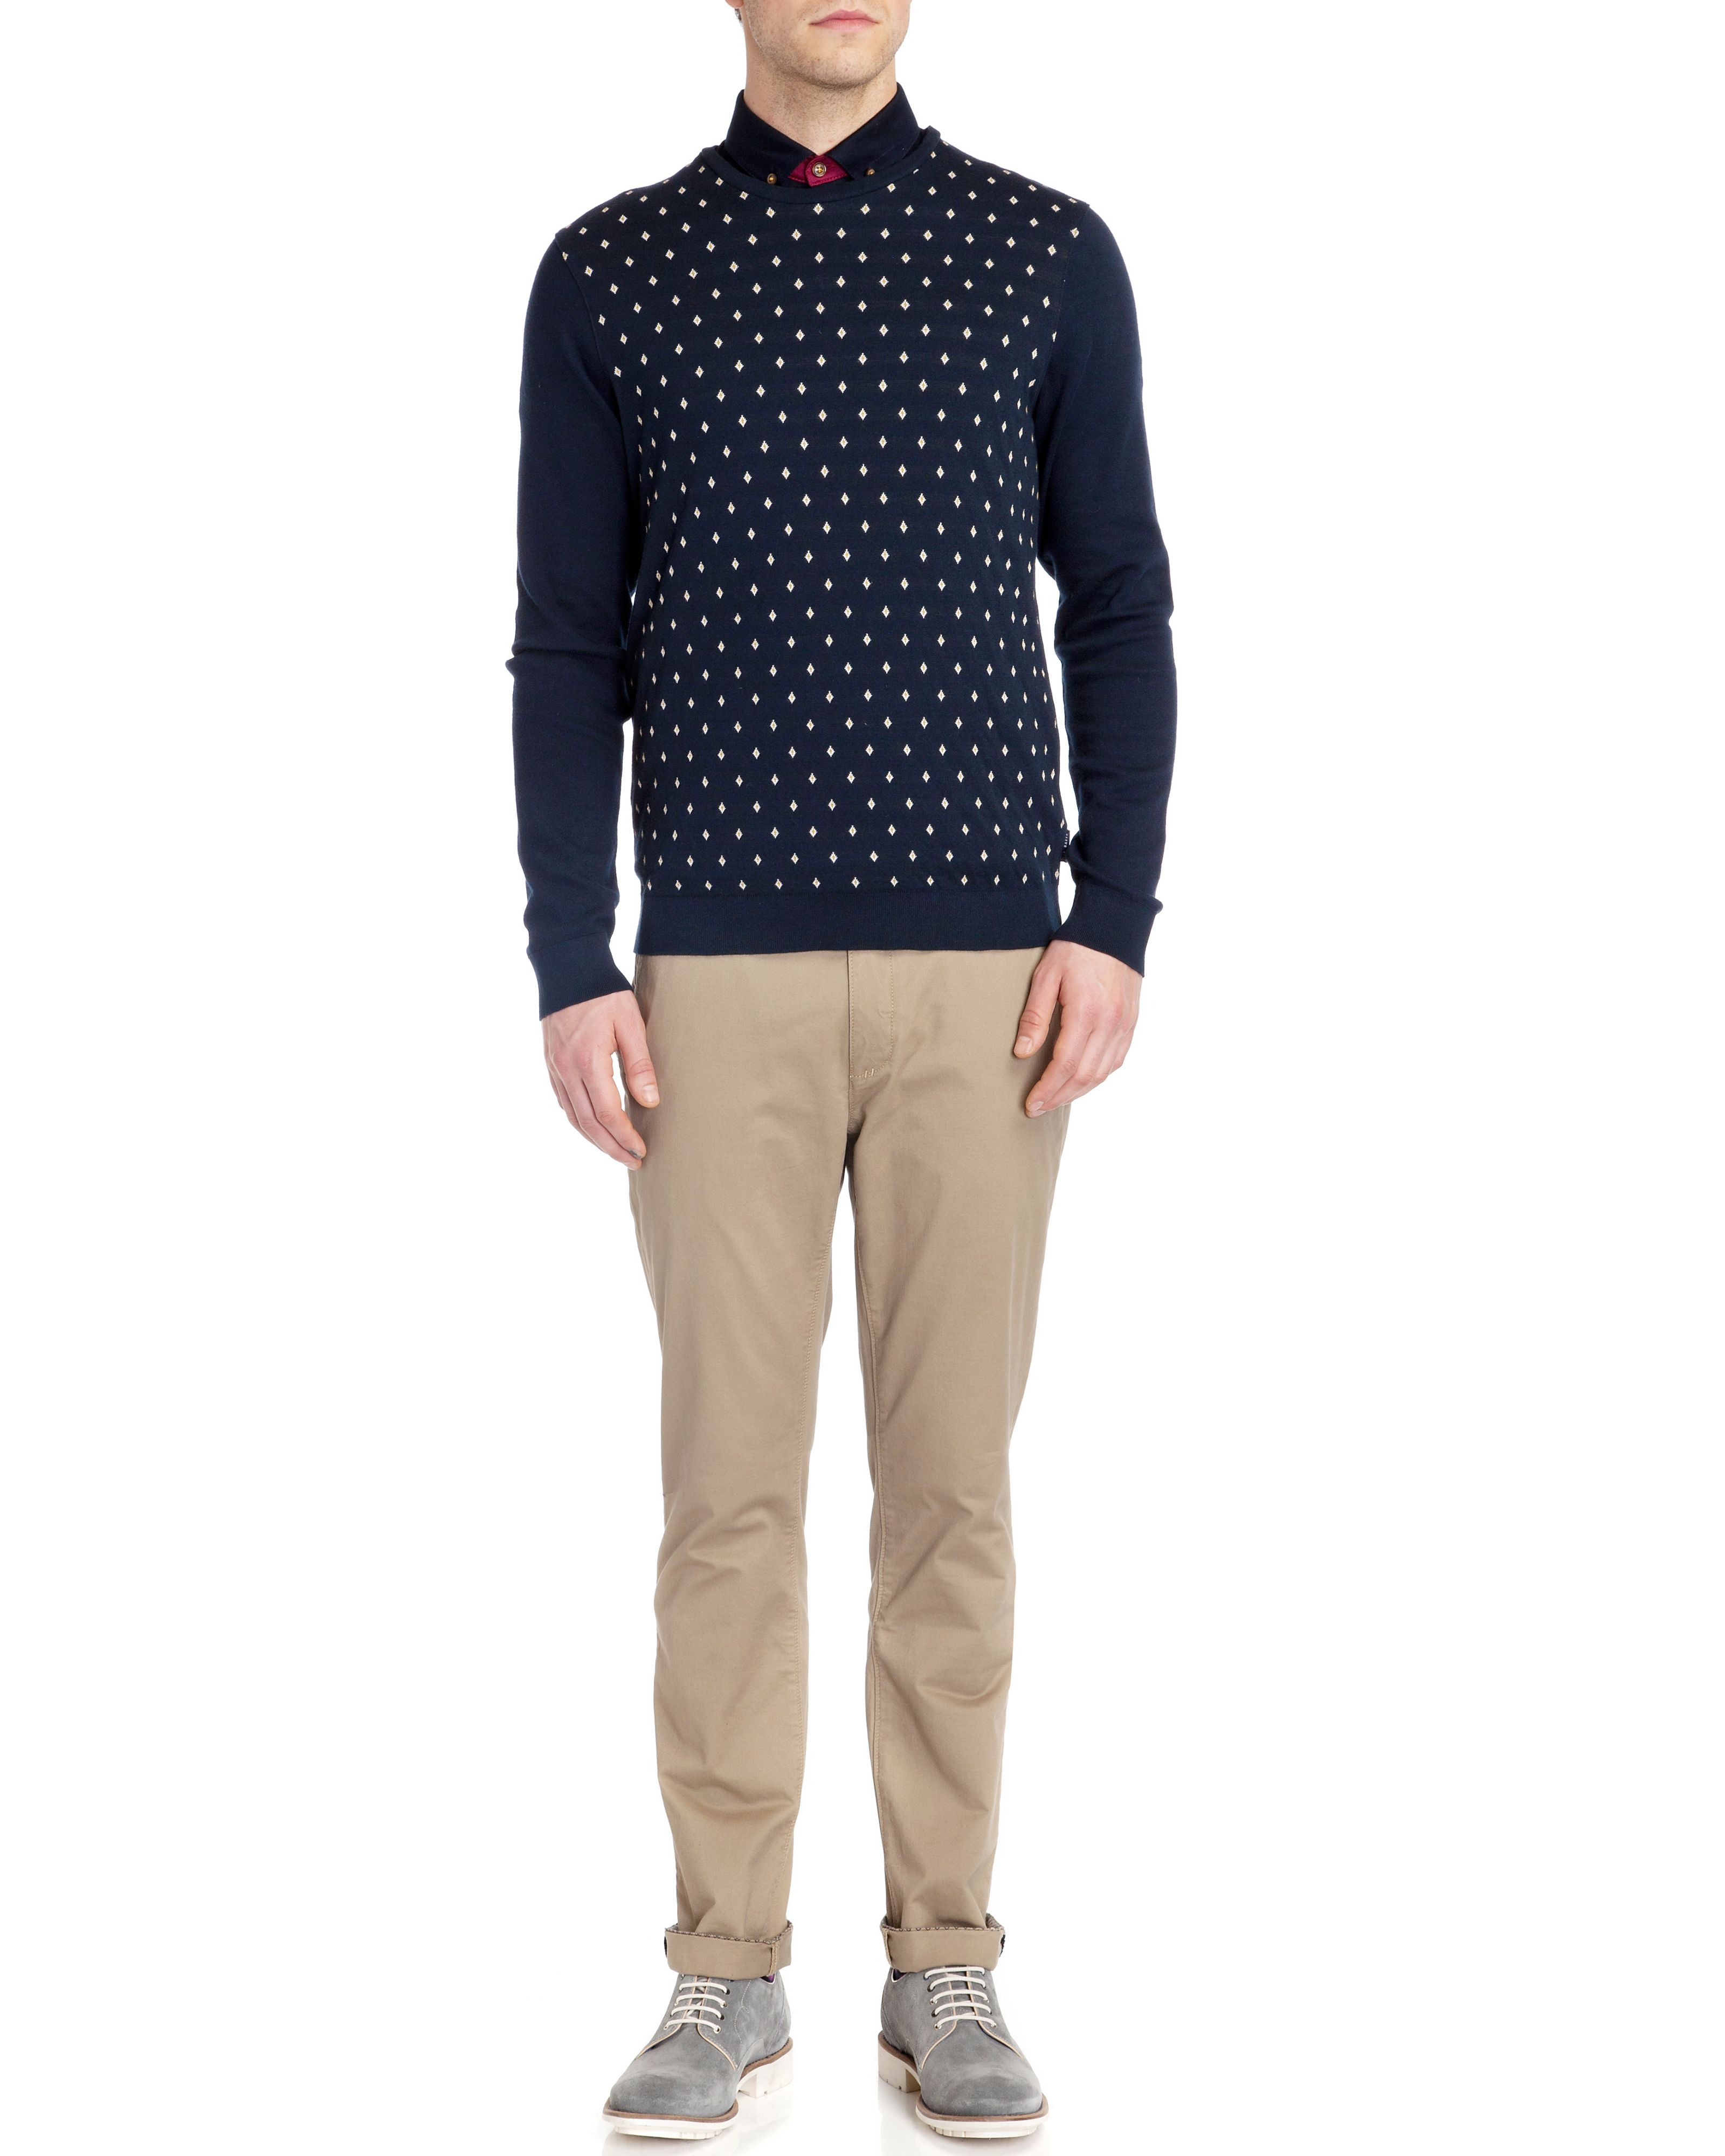 Dedwood diamond jacquard crew neck